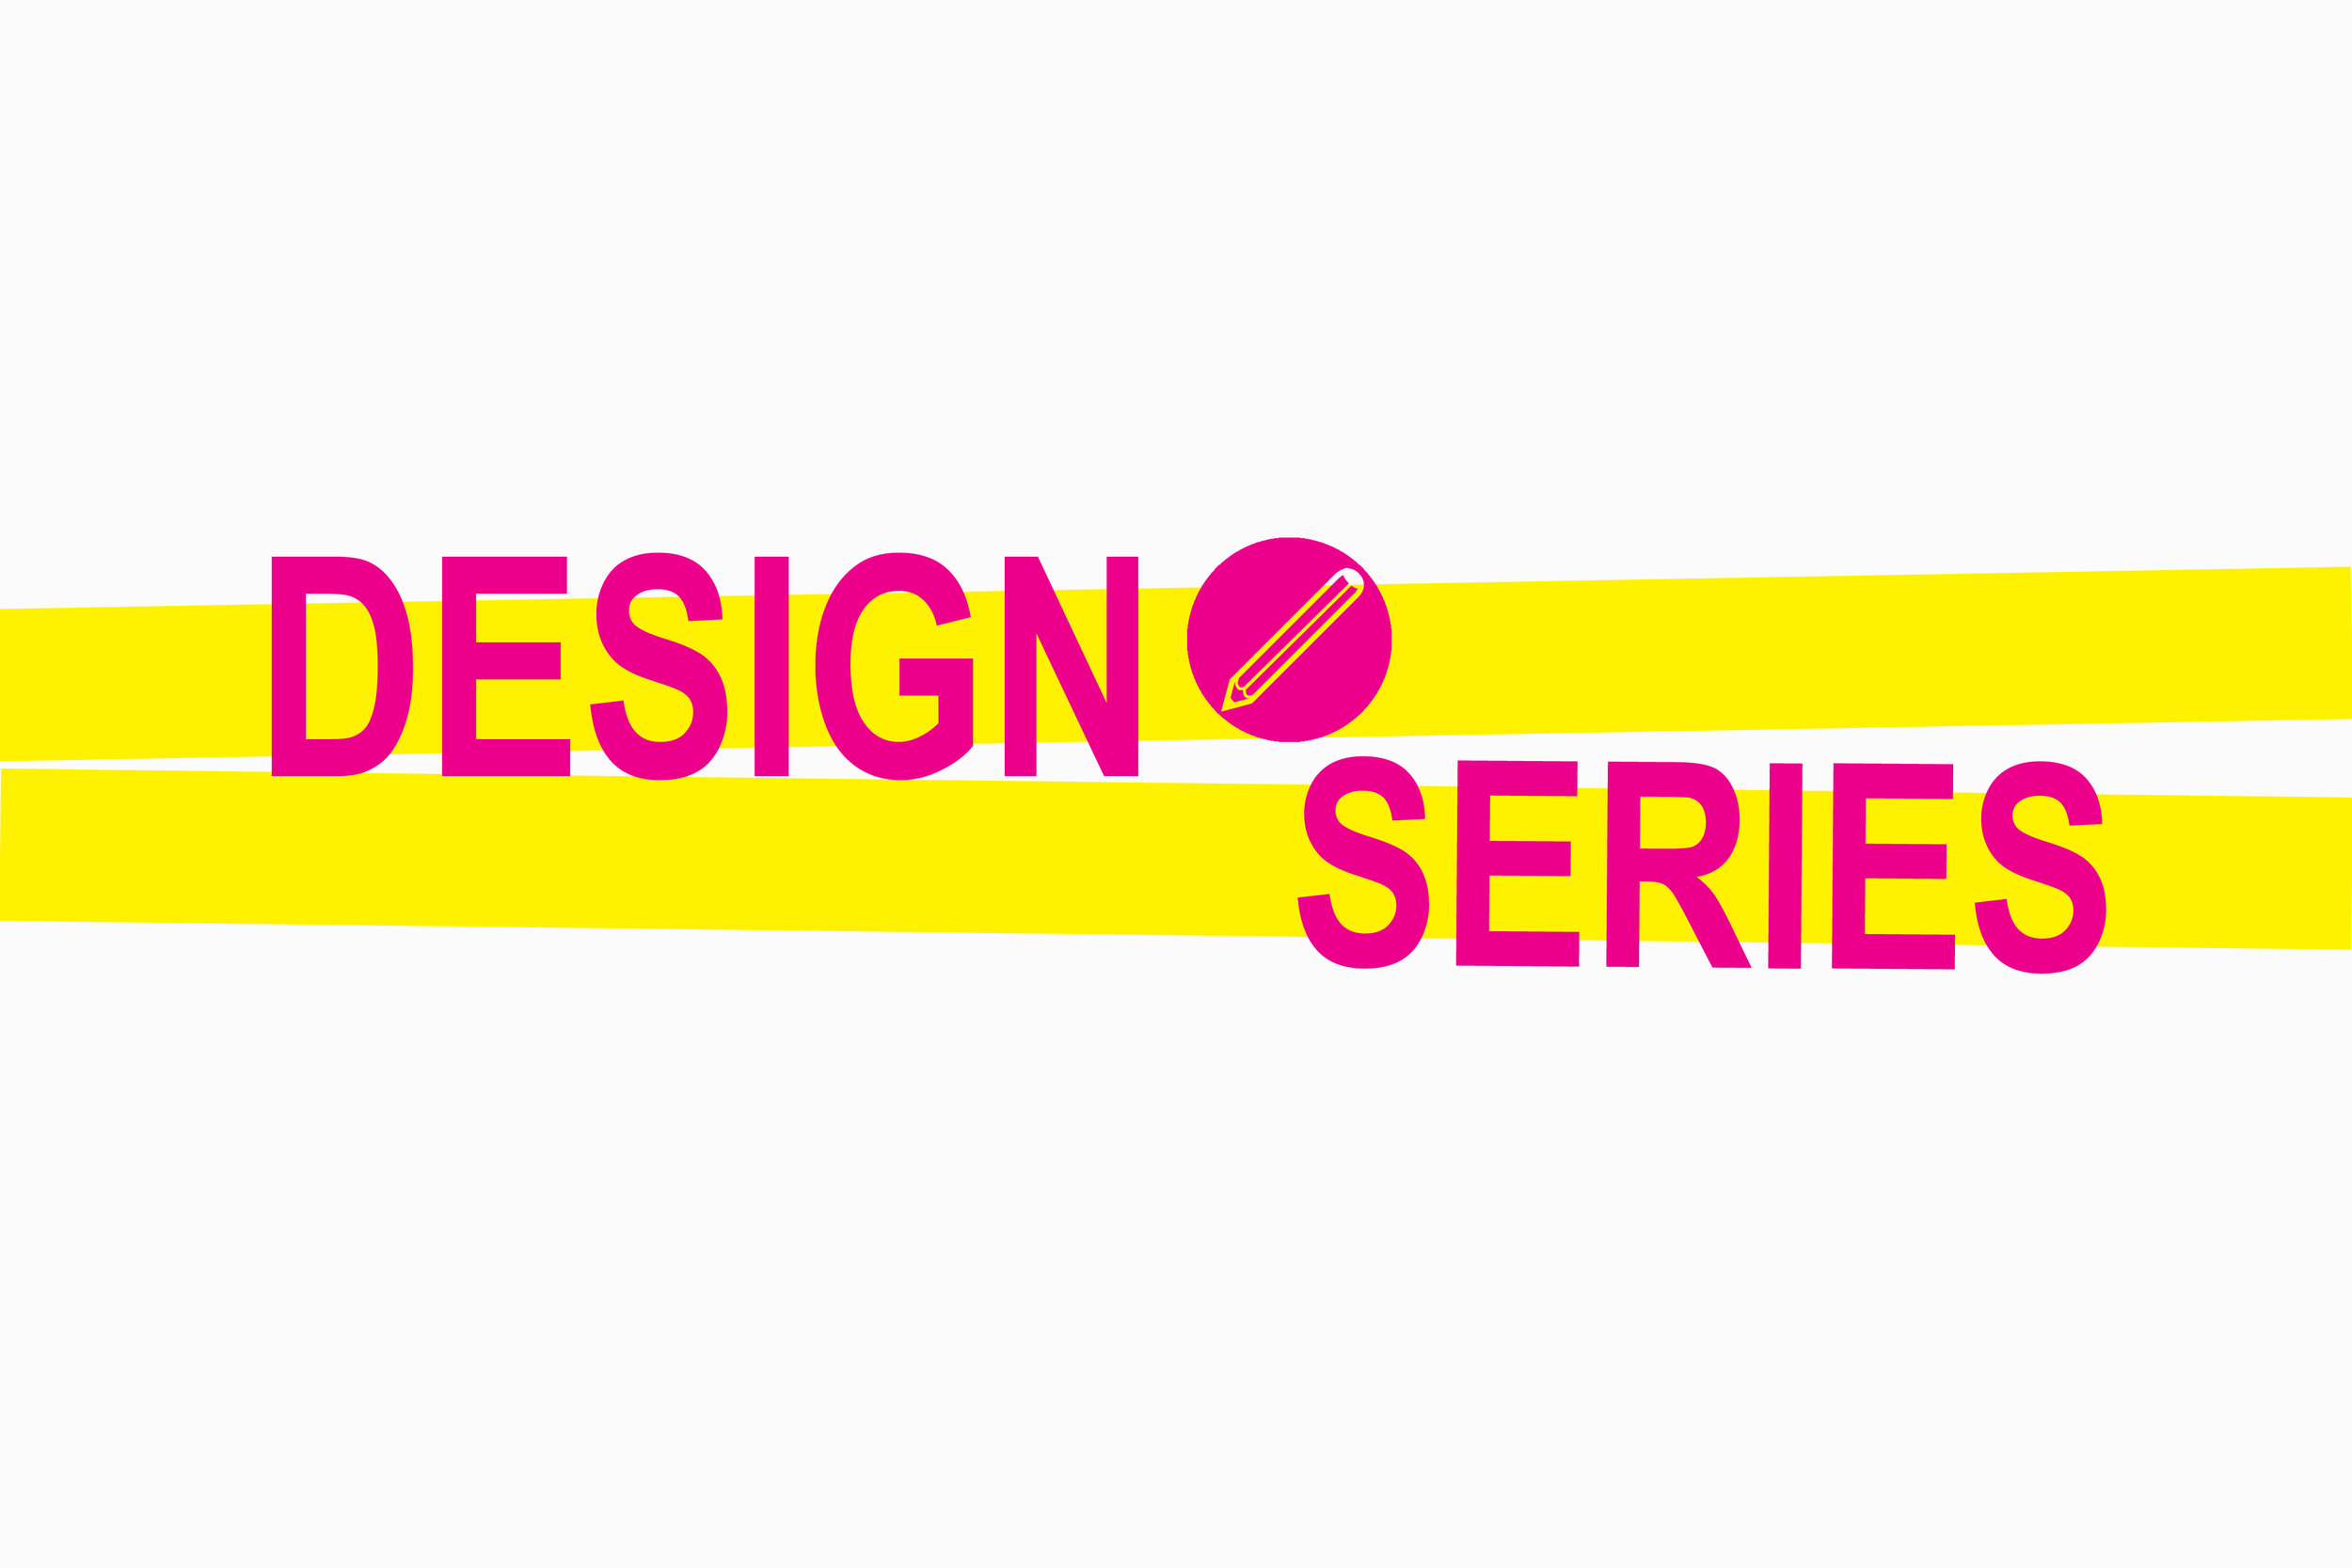 Design Toolkit DESIGN SERIES logo.jpg